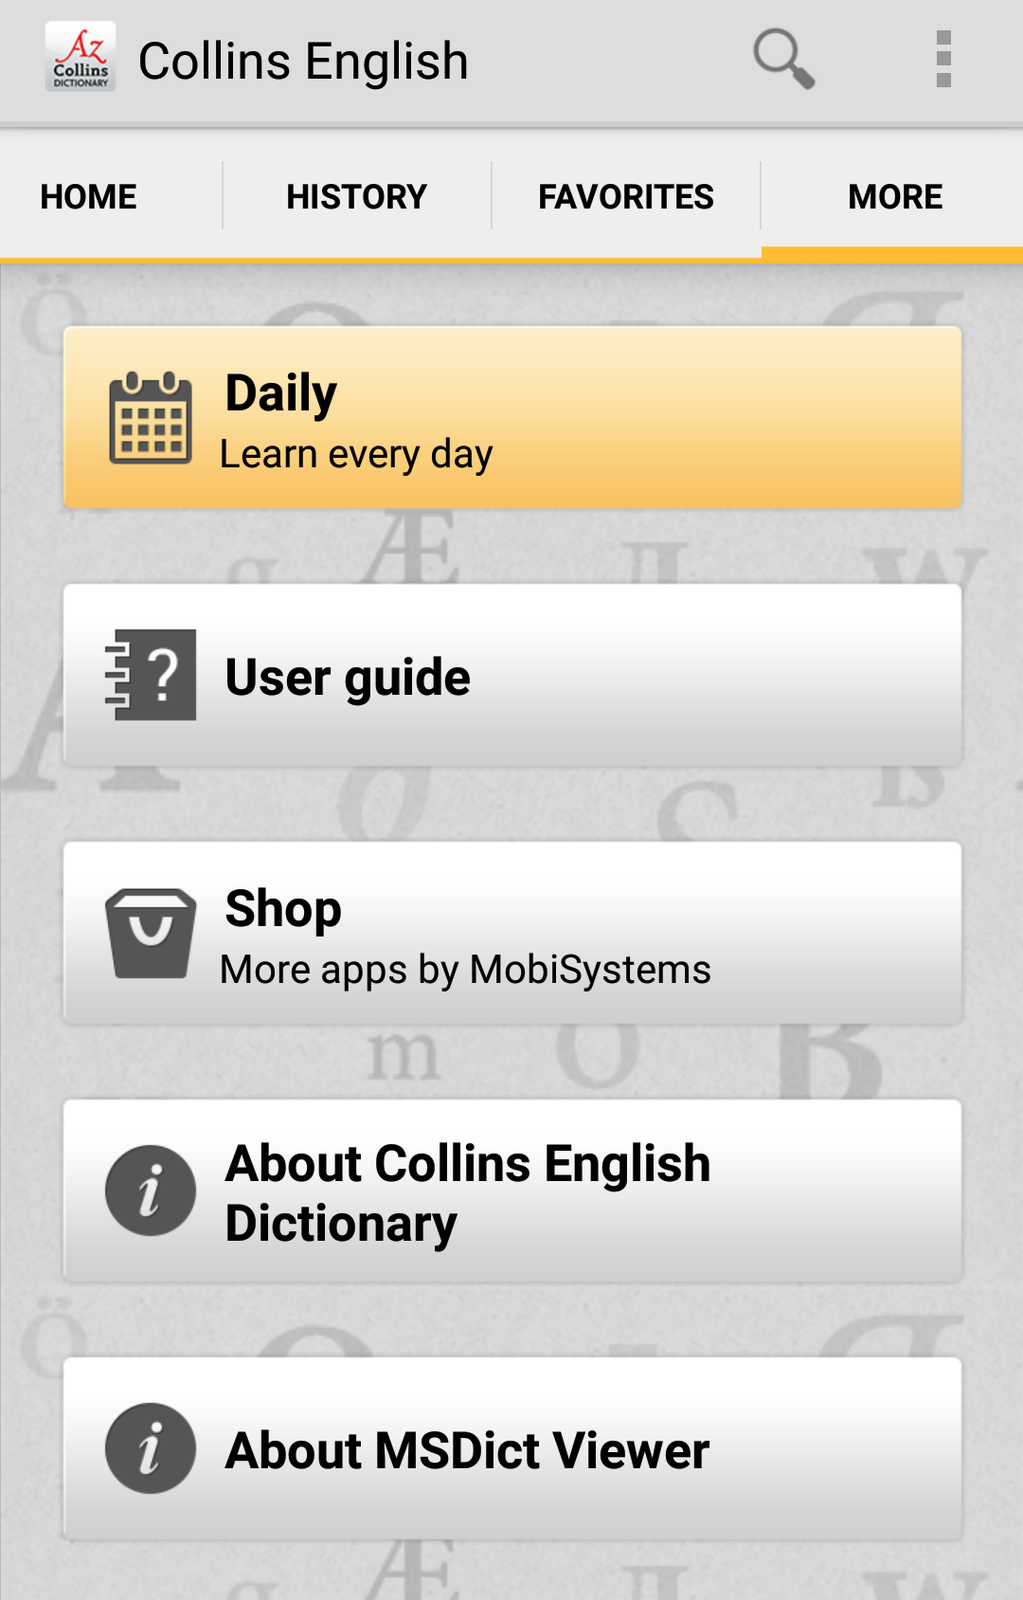 Collins English Free Dictionary Screenshot 11